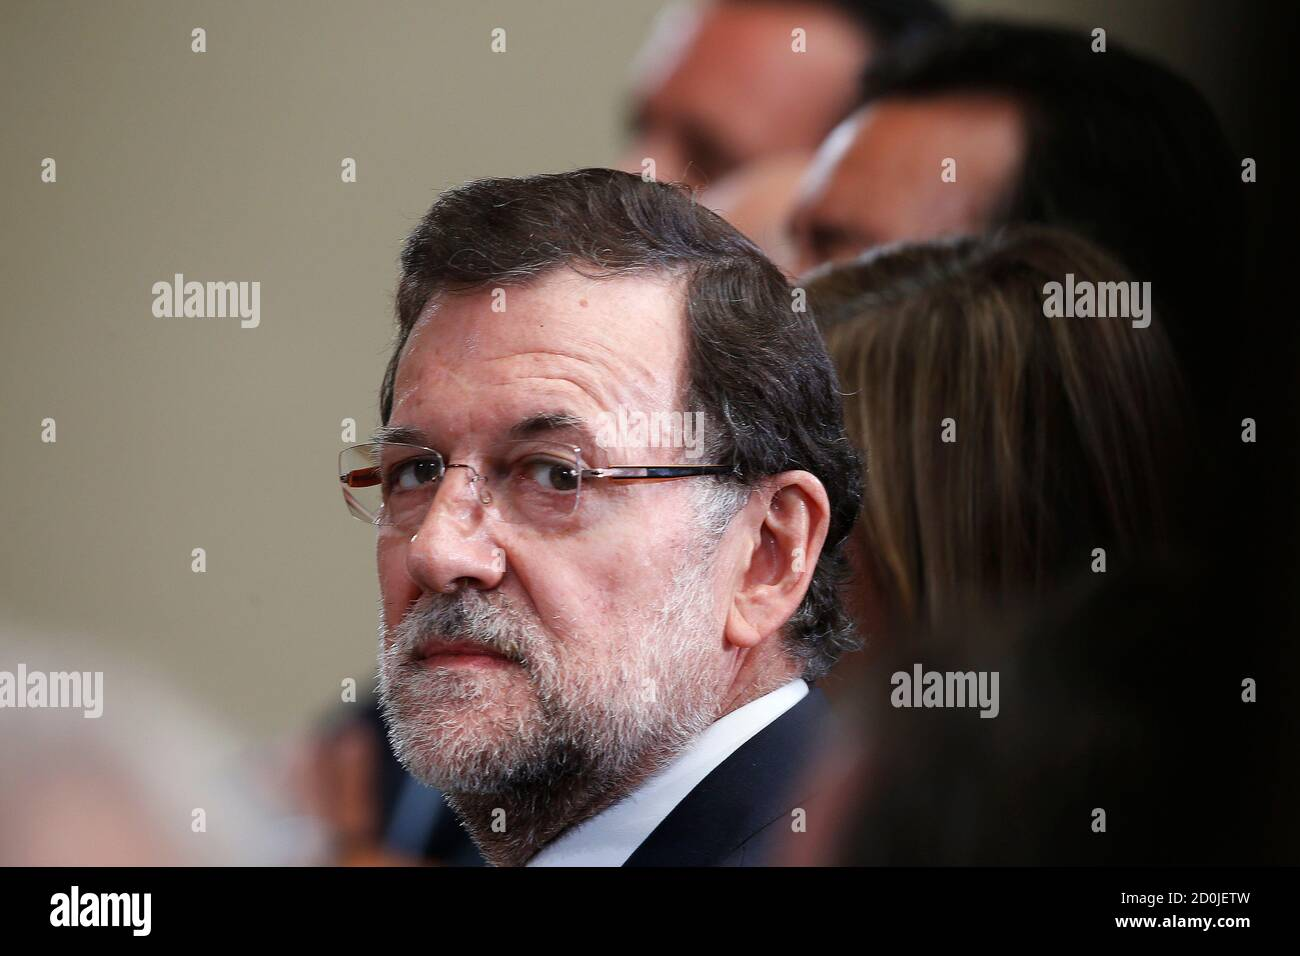 Spain's Prime Minister Mariano Rajoy attends a presentation on social action entities at the Moncloa Palace in Madrid July 11, 2013. Spain's Prime Minister Mariano Rajoy may take a pounding from fresh corruption allegations against his People's Party but the government is strong enough to ride the storm, analysts and sources say. REUTERS/Juan Medina (SPAIN - Tags: POLITICS) Foto de stock